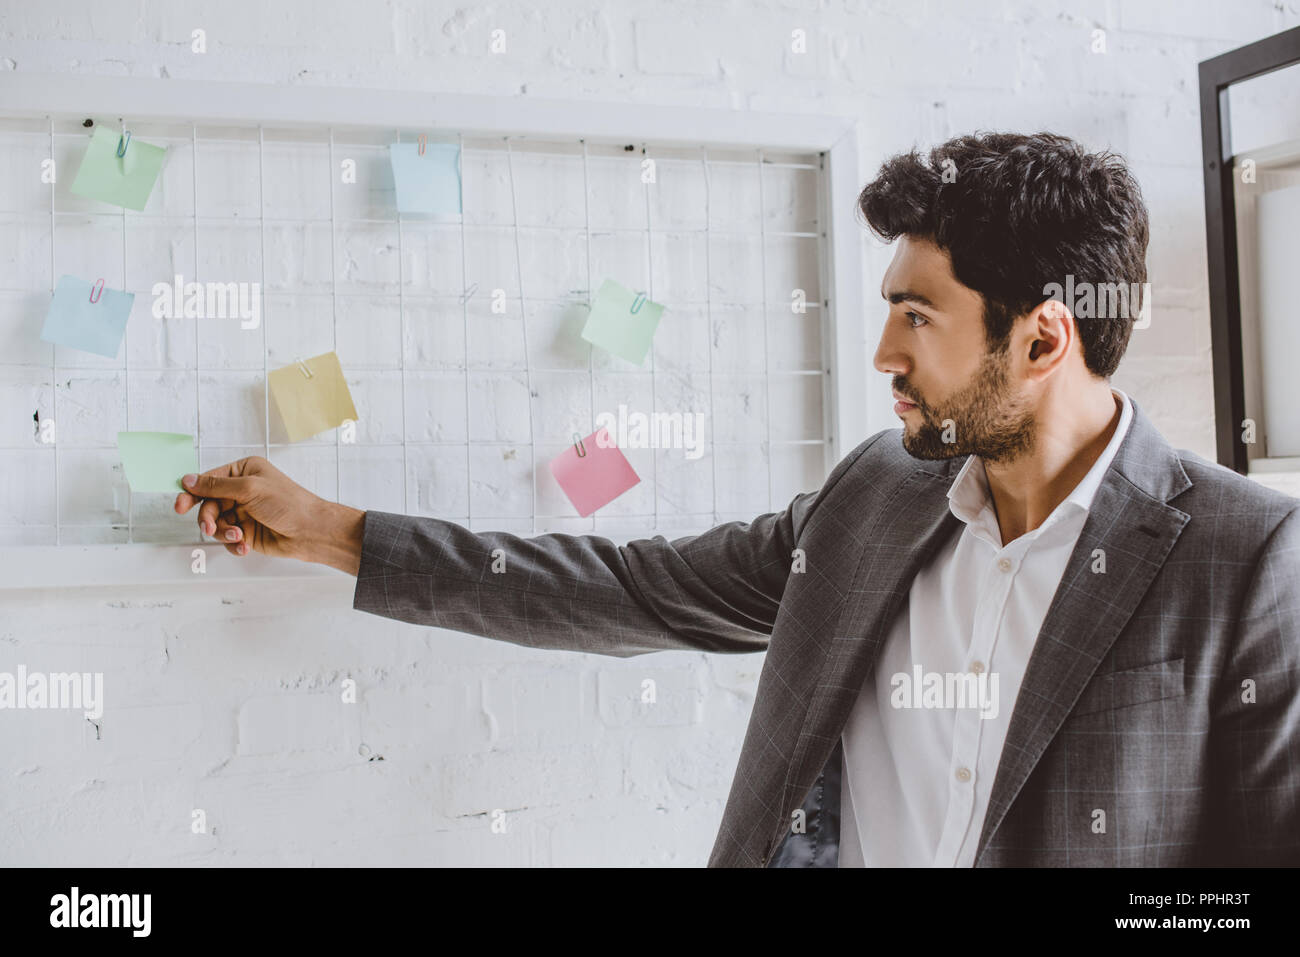 handsome businessman taking sticker from task board in office - Stock Image